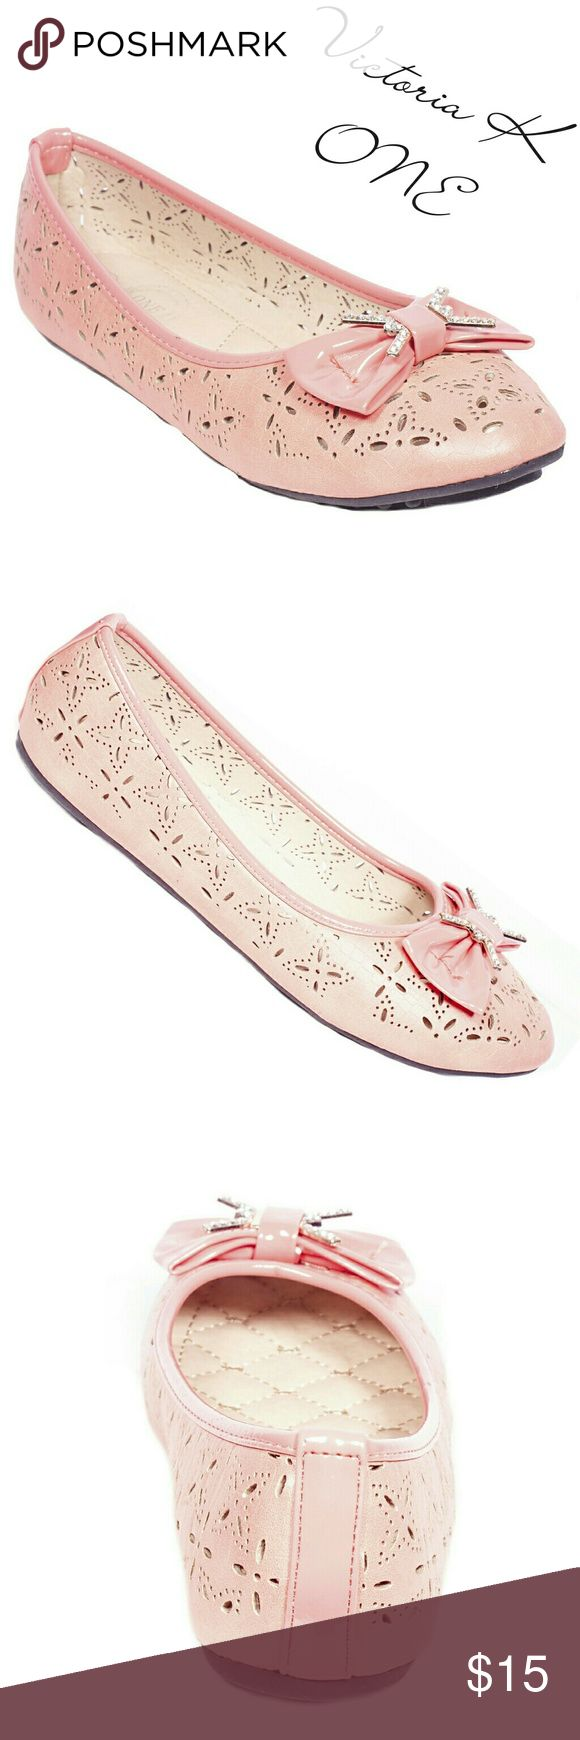 """Tory K Women Ballerina Bow Flats, b-2057, Coral Brand new Victoria K perforated coral woman ballerina flats in PU leather with a stylish bow and stone-studded buckle in the front. From the ONE collection. Soft cushioned sole, very comfortable. Bubbled bottom sole for extra traction. A true staple in ladies shoes fashion! Measurements: larger sizes run small. Size 8 measures 9.5 inches, sz 8.5 - 9 3/4"""", sz 9 -10"""", sz 10 - 10.5, all half sizes are in 1/4 inch increments of each other. Tory K…"""